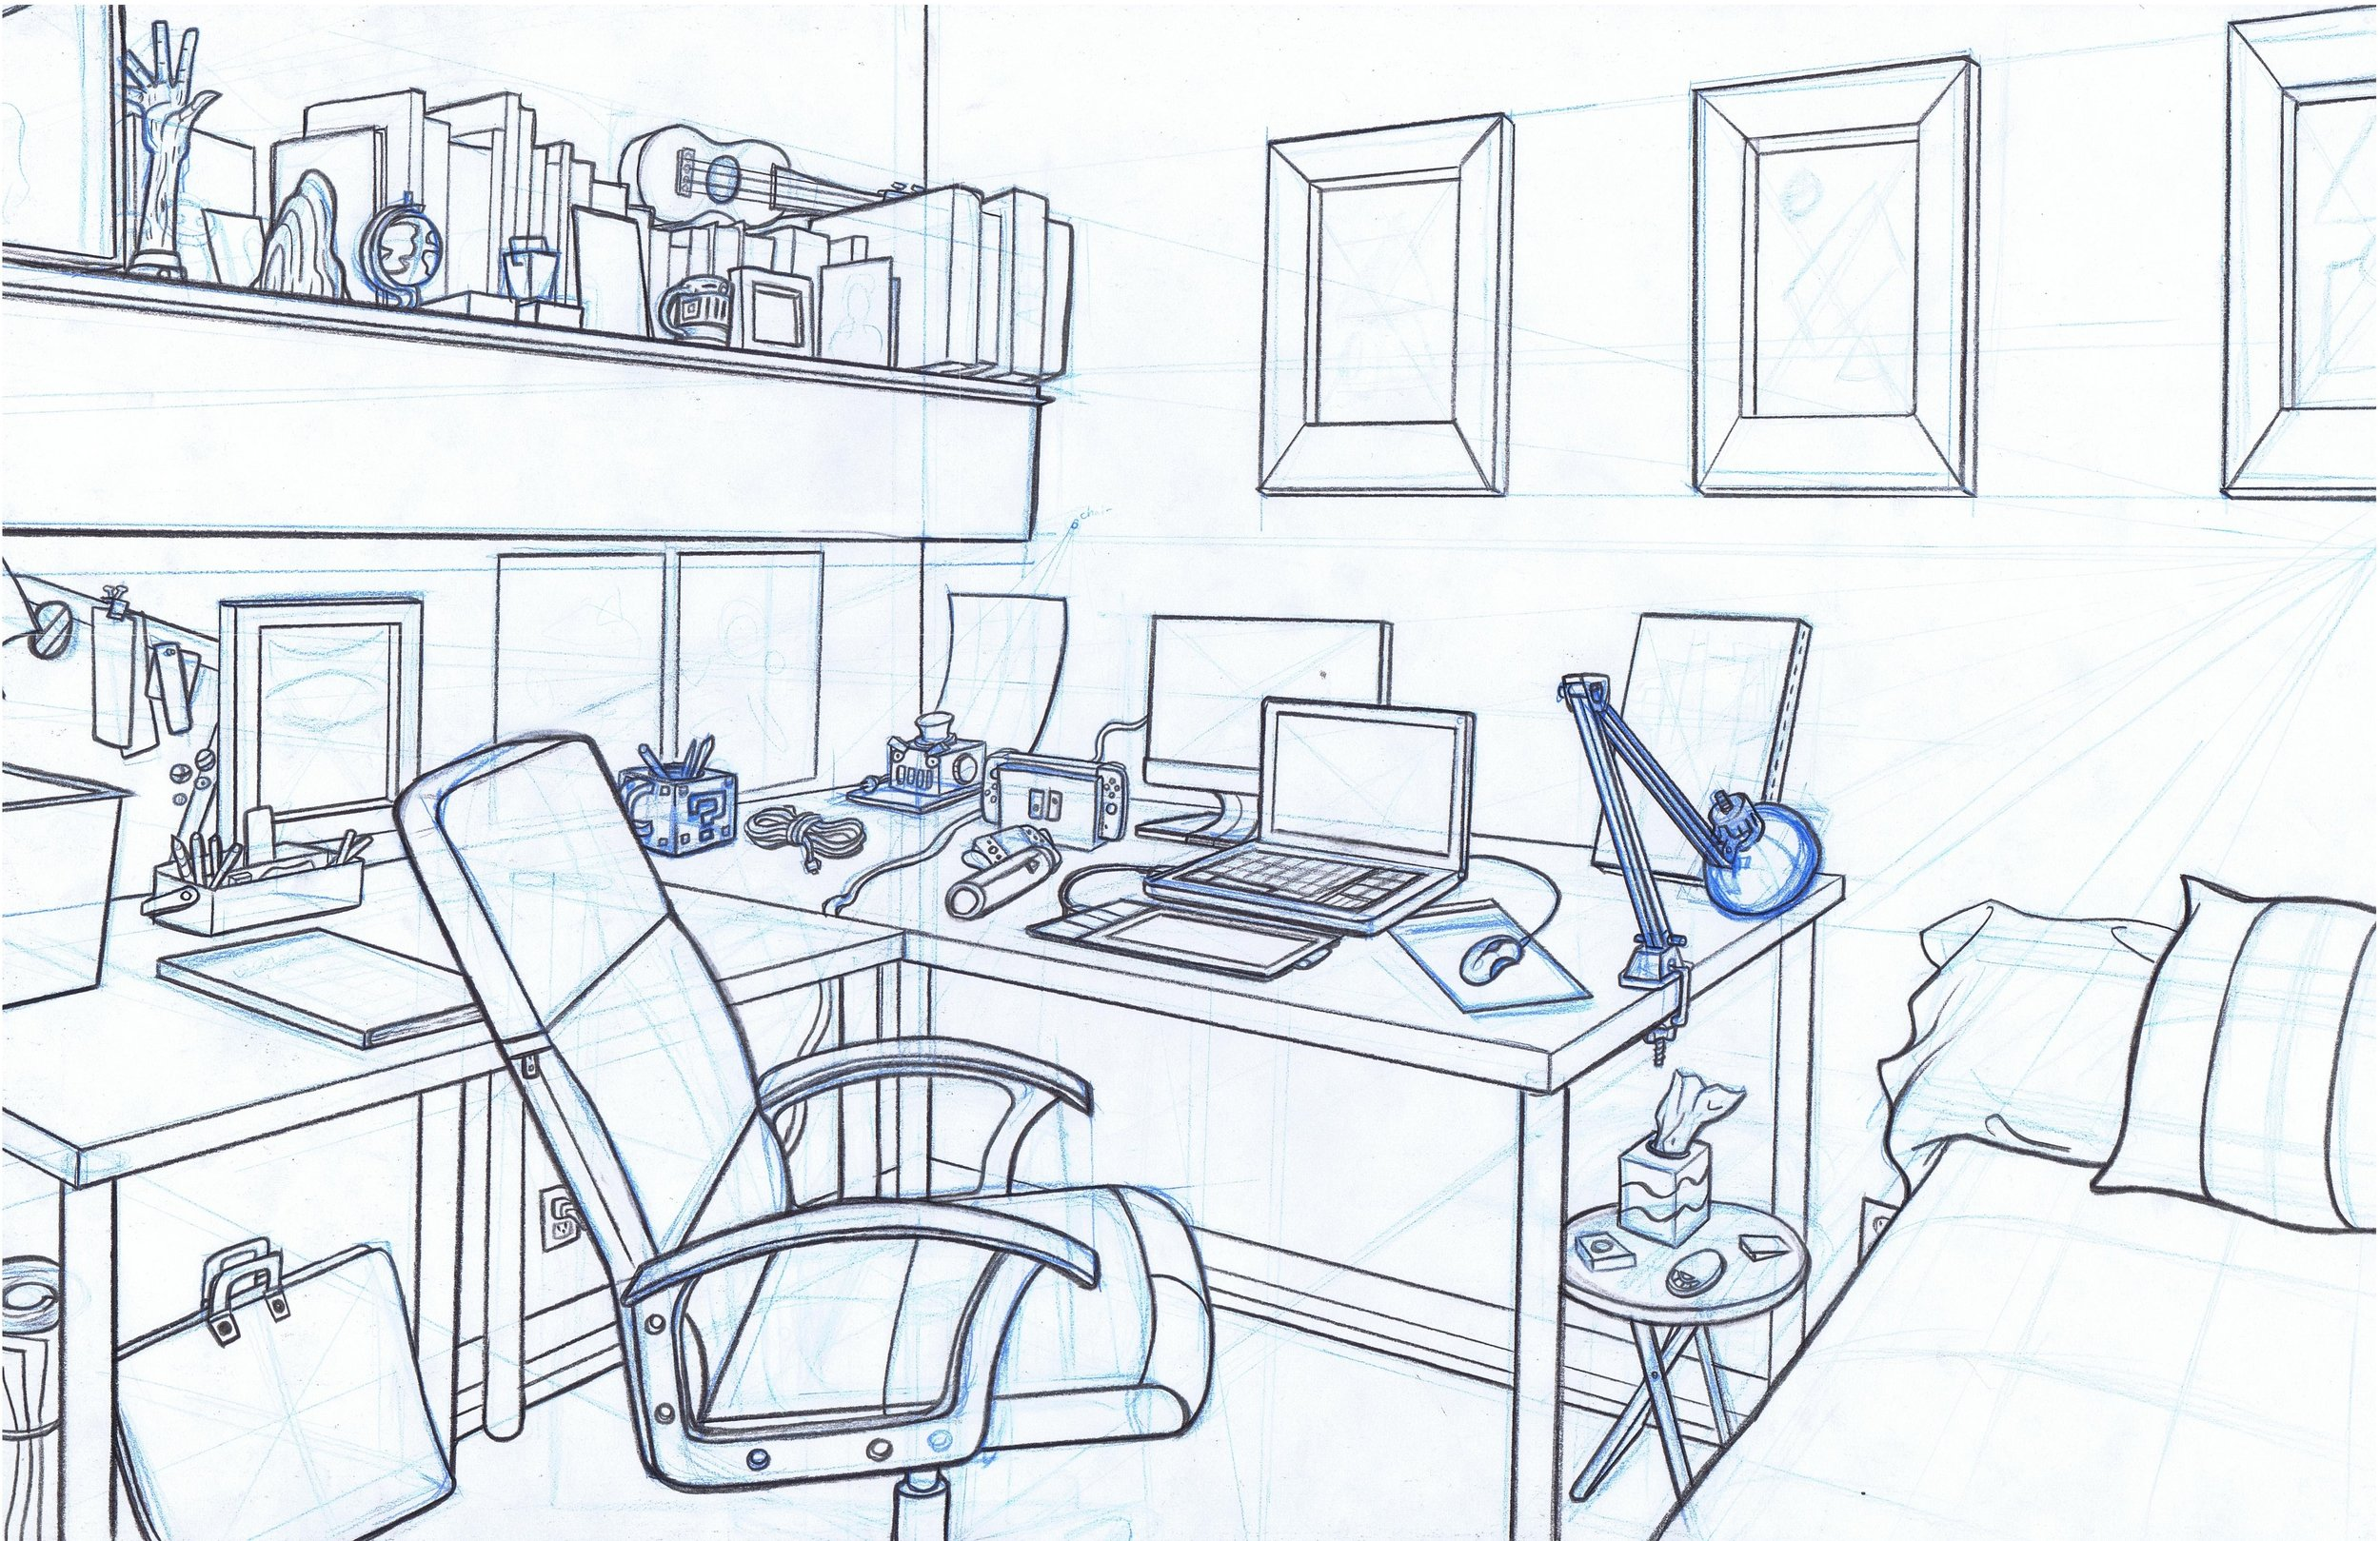 Liam_Stone_Perspective_Line_Drawing1.jpg